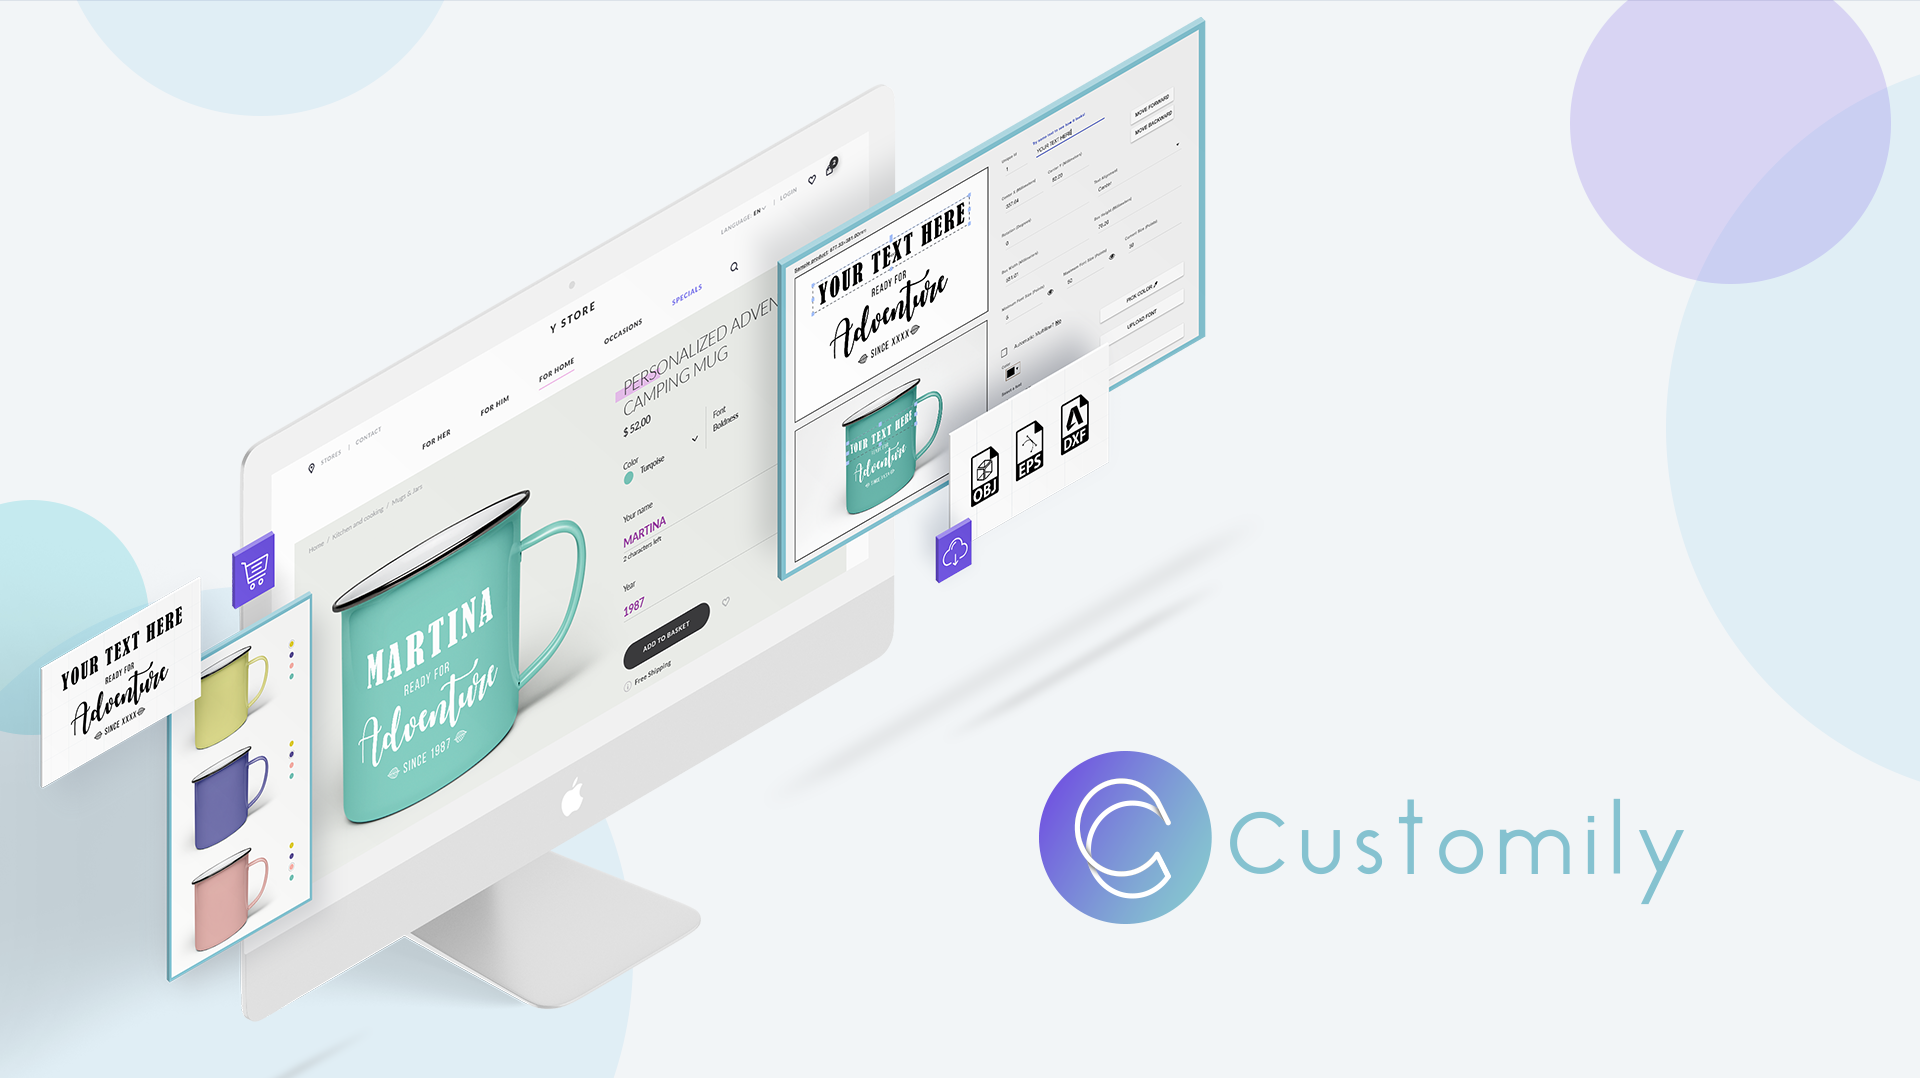 Product customization for WooCommerce - Sell personalized products!